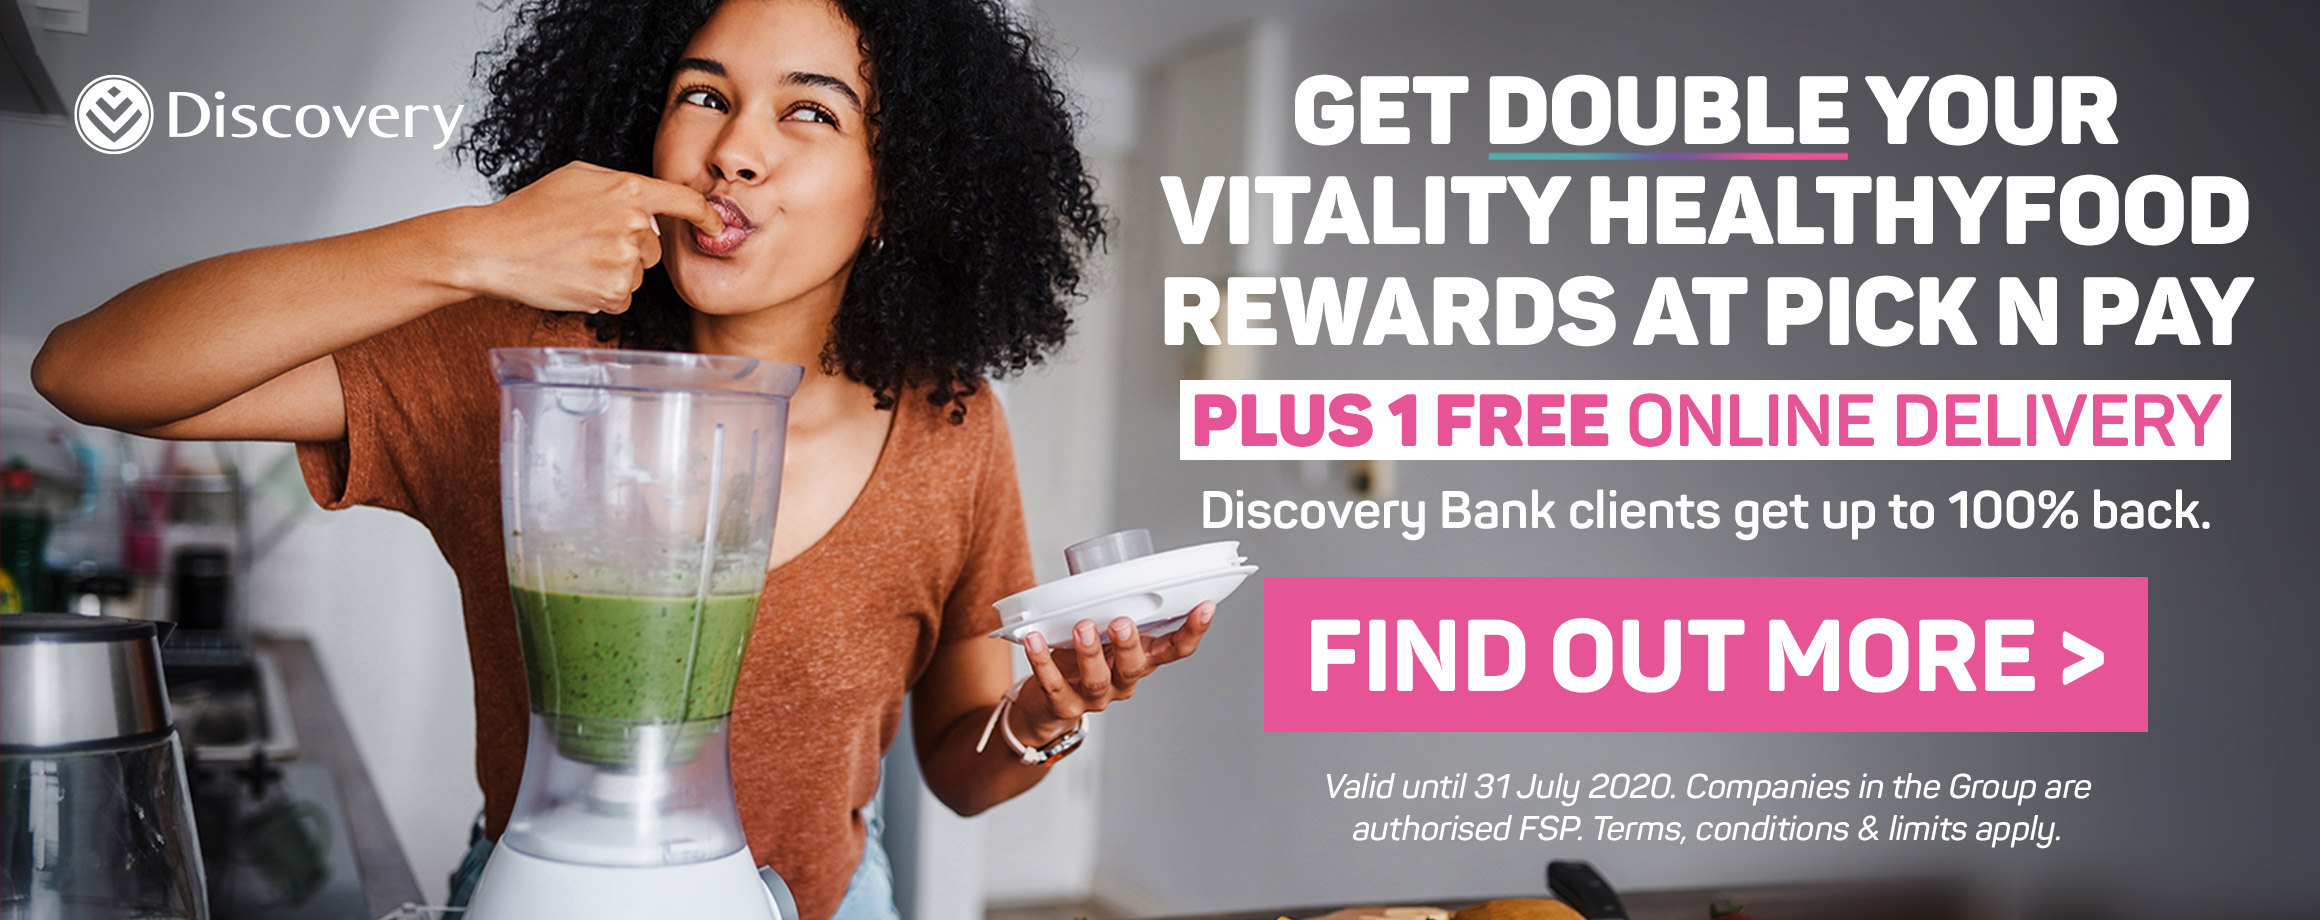 Get double your vitalilty healthyfood rewards at Pick n Pay. Find out more >